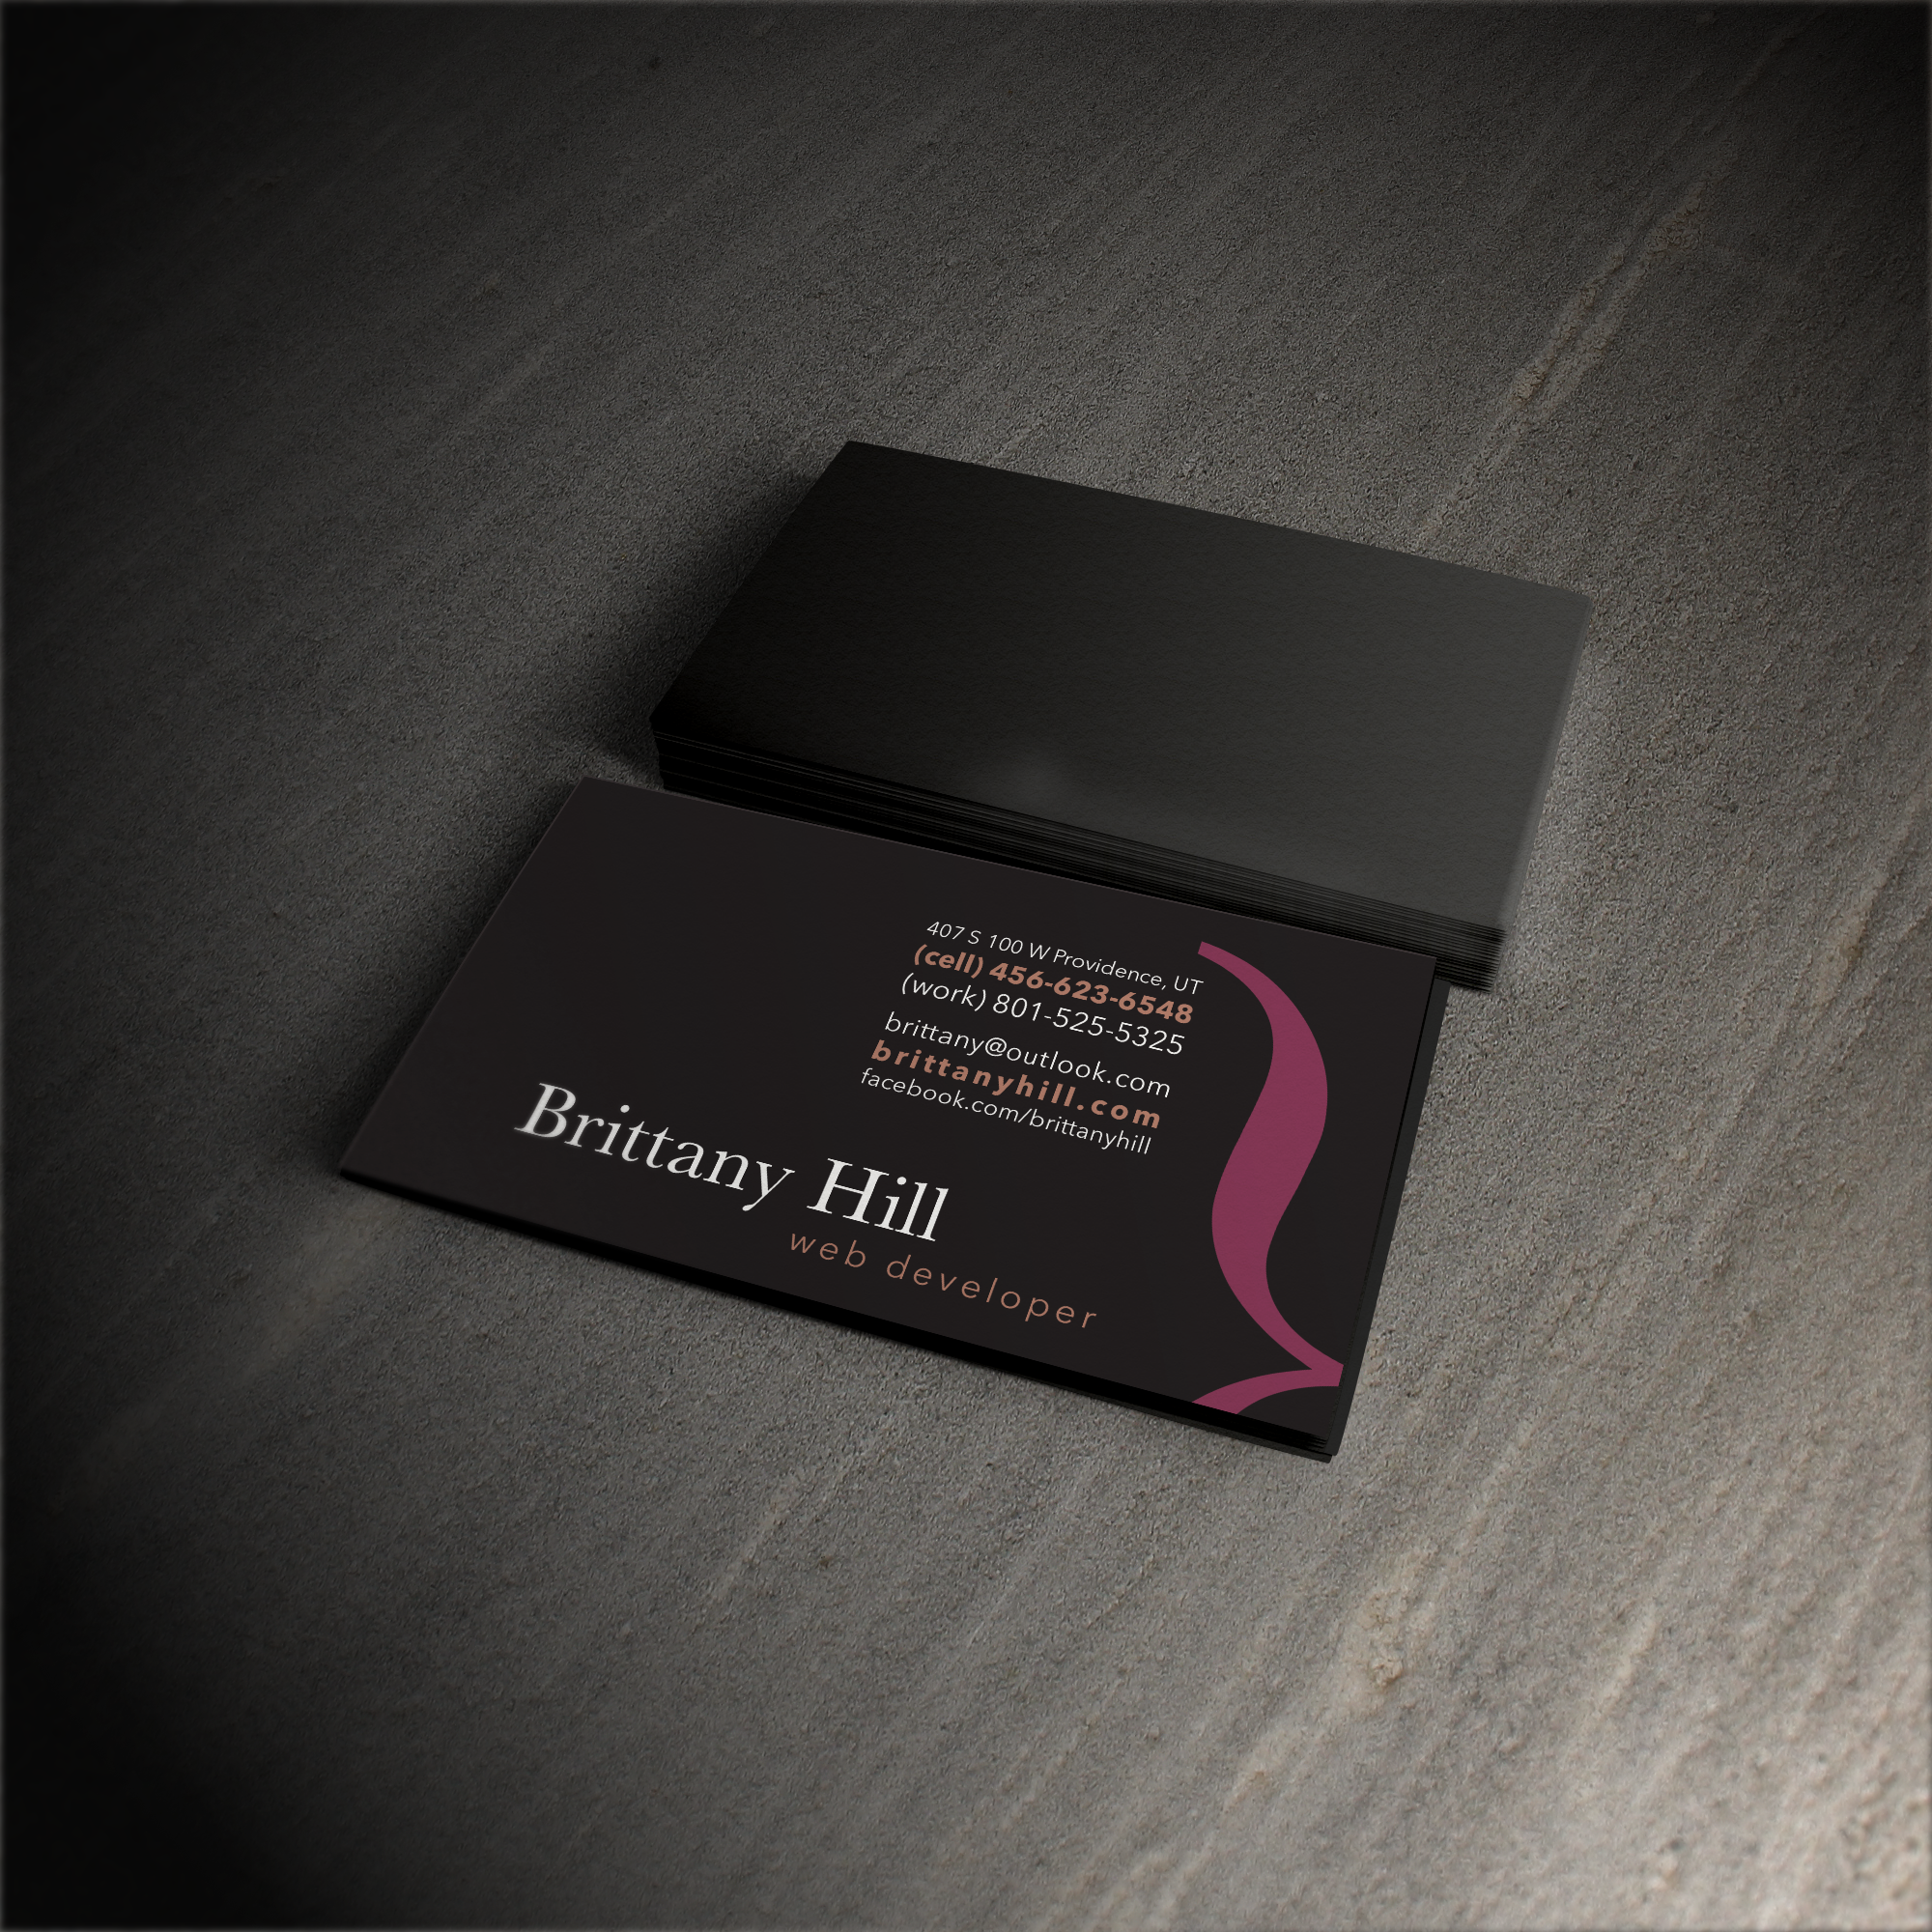 Brittany Hill - Web Design Business Cards